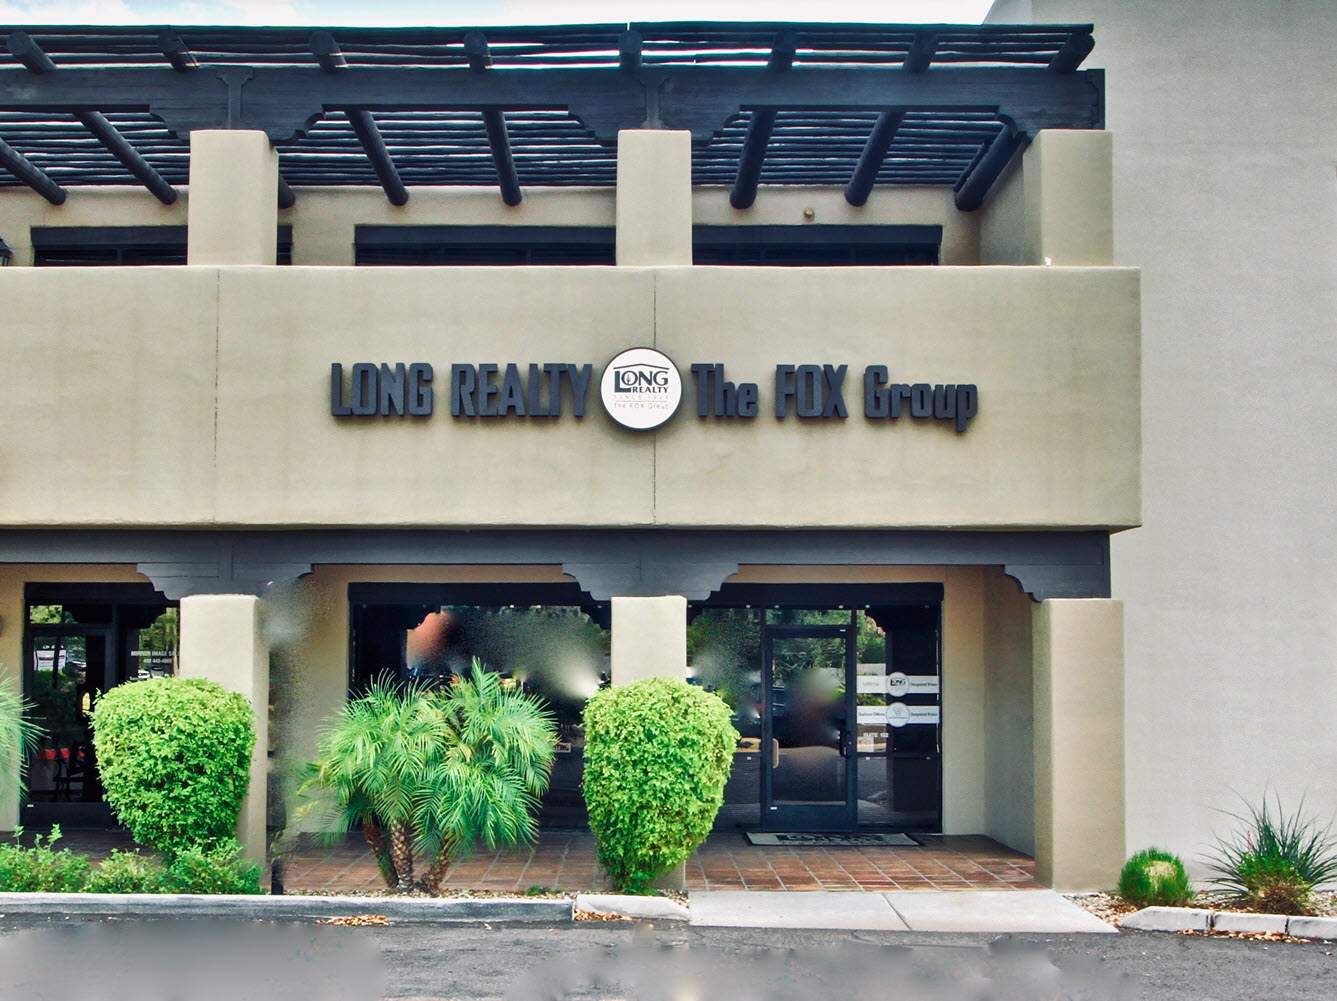 Scottsdale - Long Realty The FOX Group